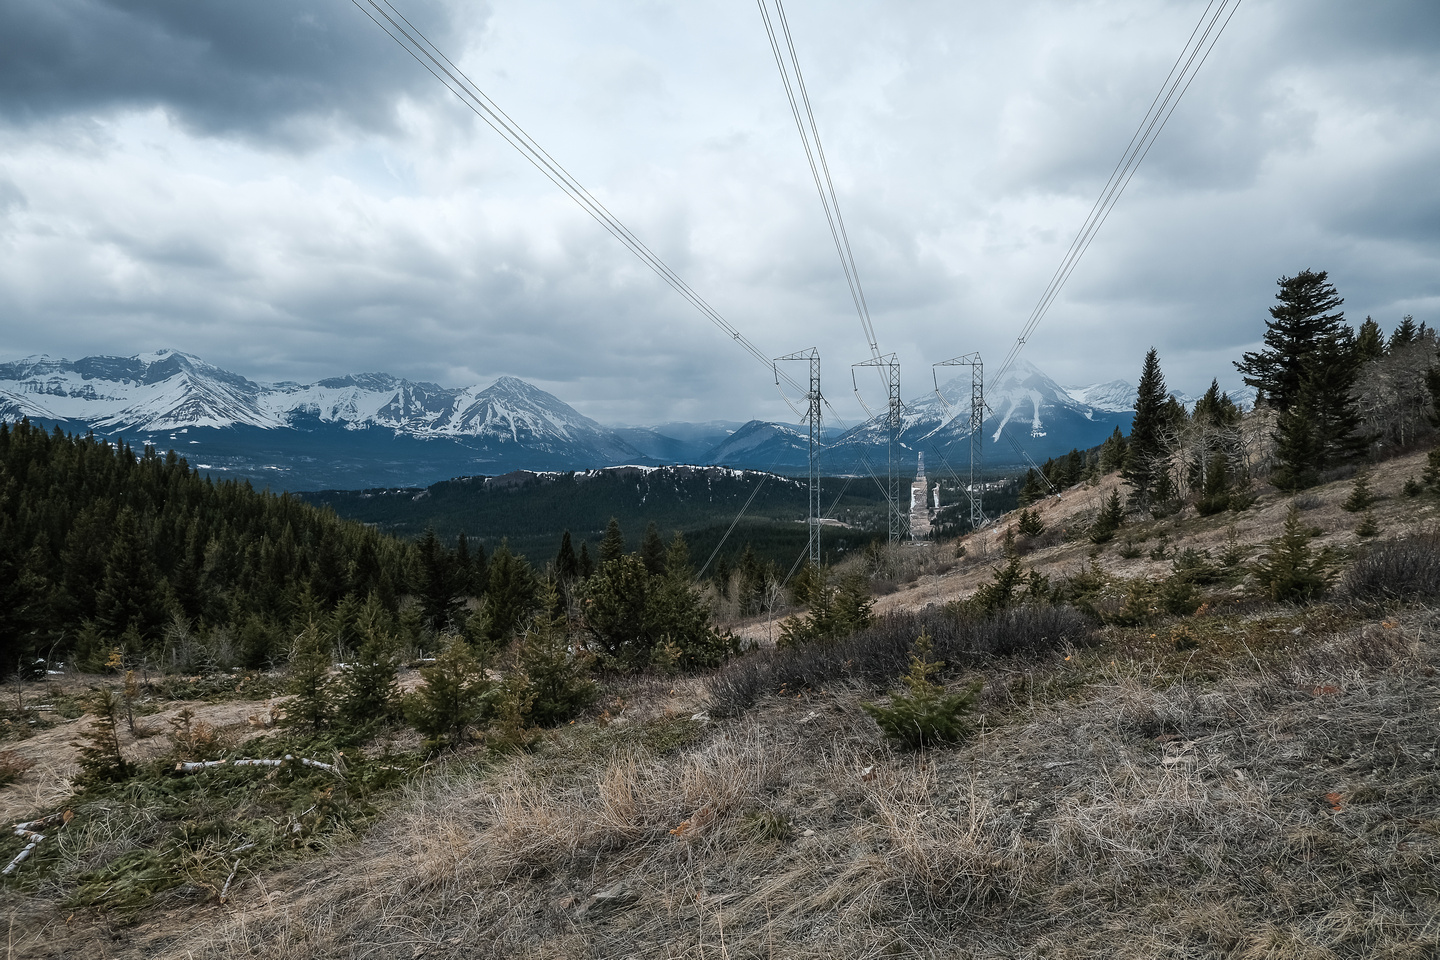 Moody views to the west as we hike under the power lines.